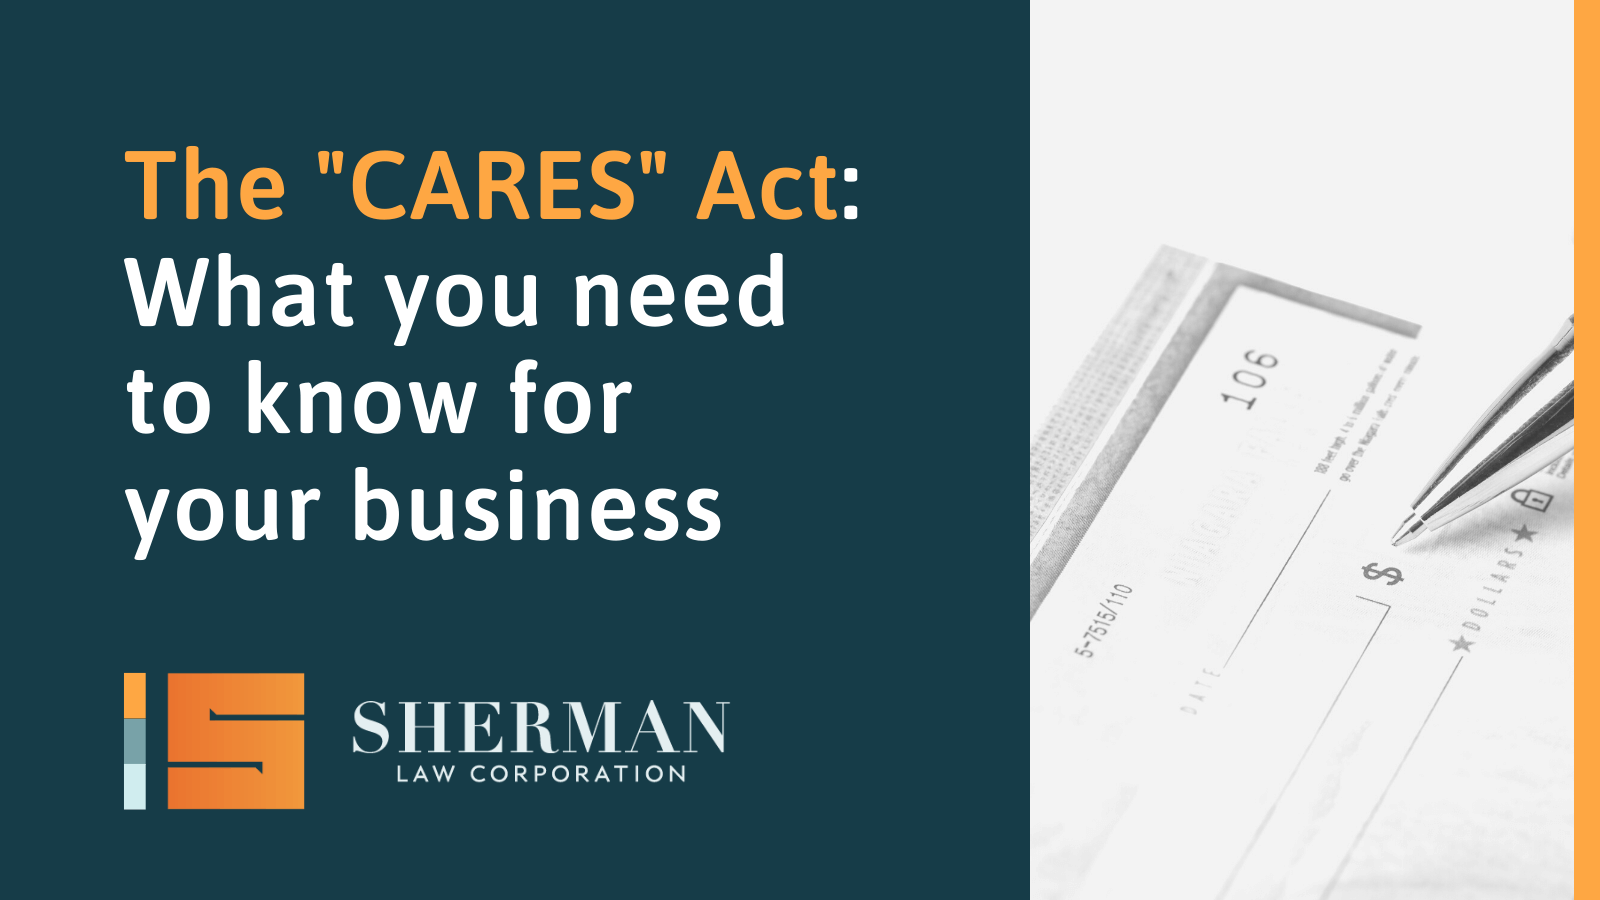 The CARES Act - california employment lawyer - sherman law corporation